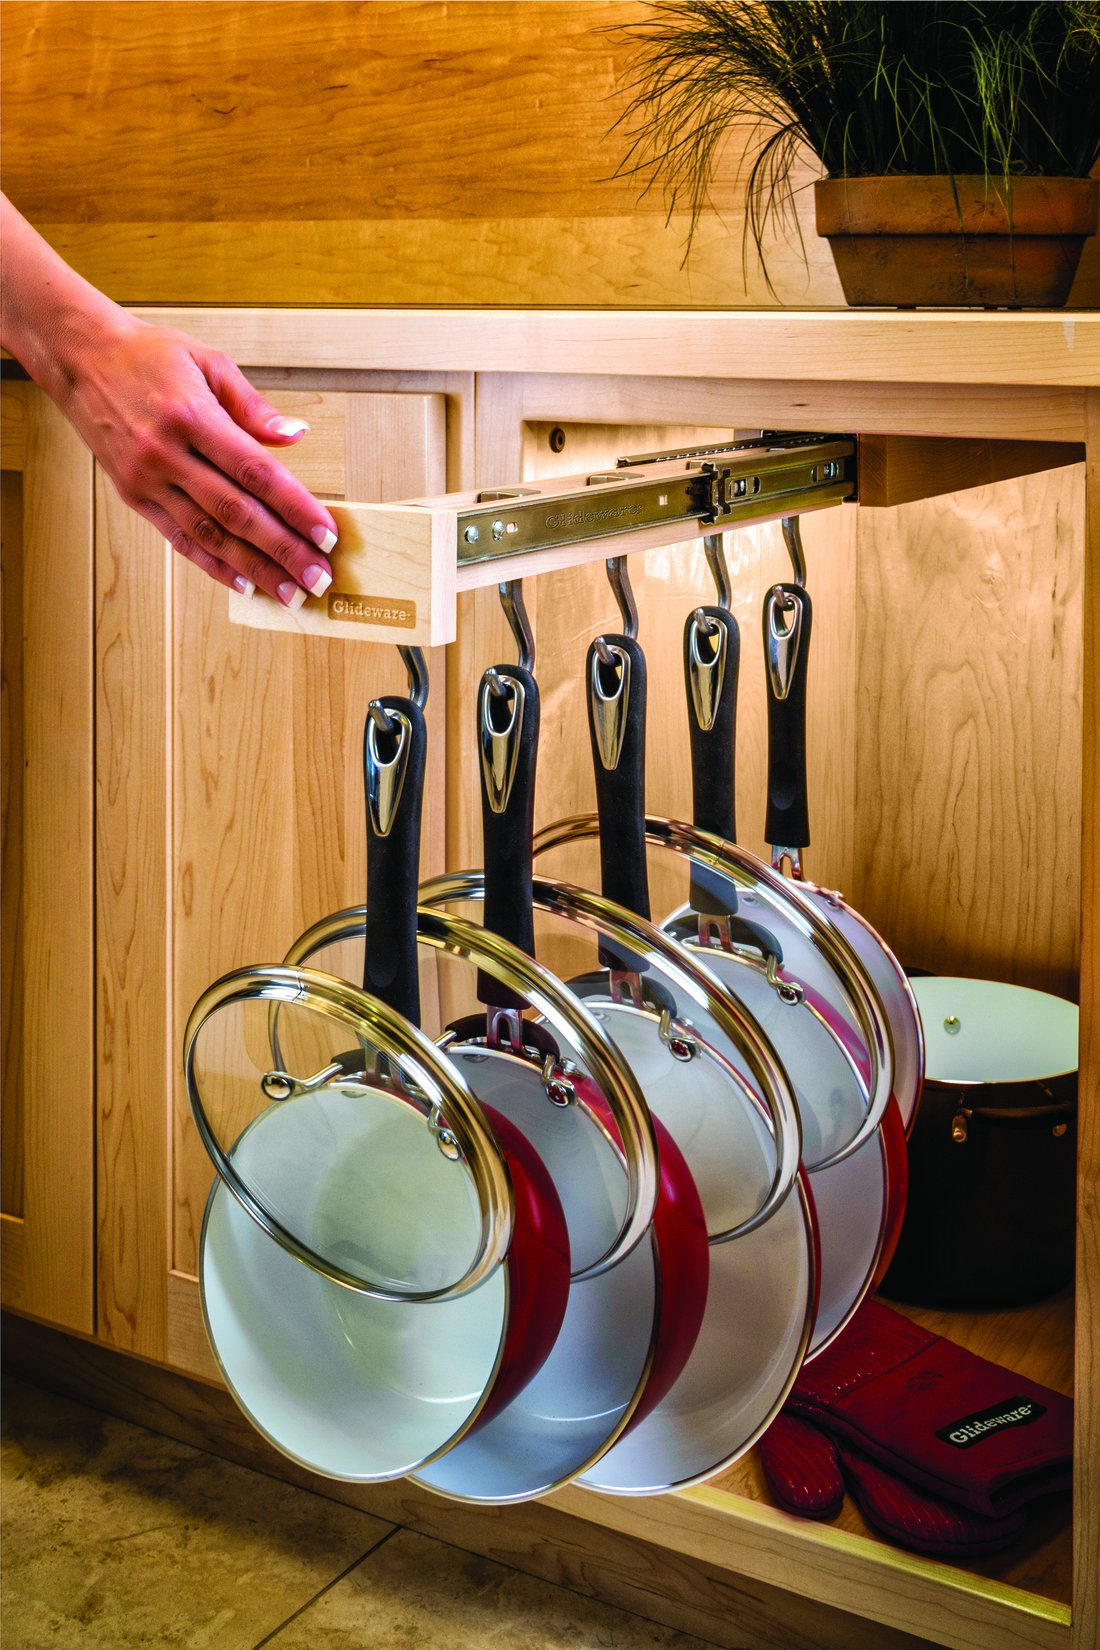 Glideware Pull-out Cabinet Organizer for Pots and Pans by Glideware (Image #4)